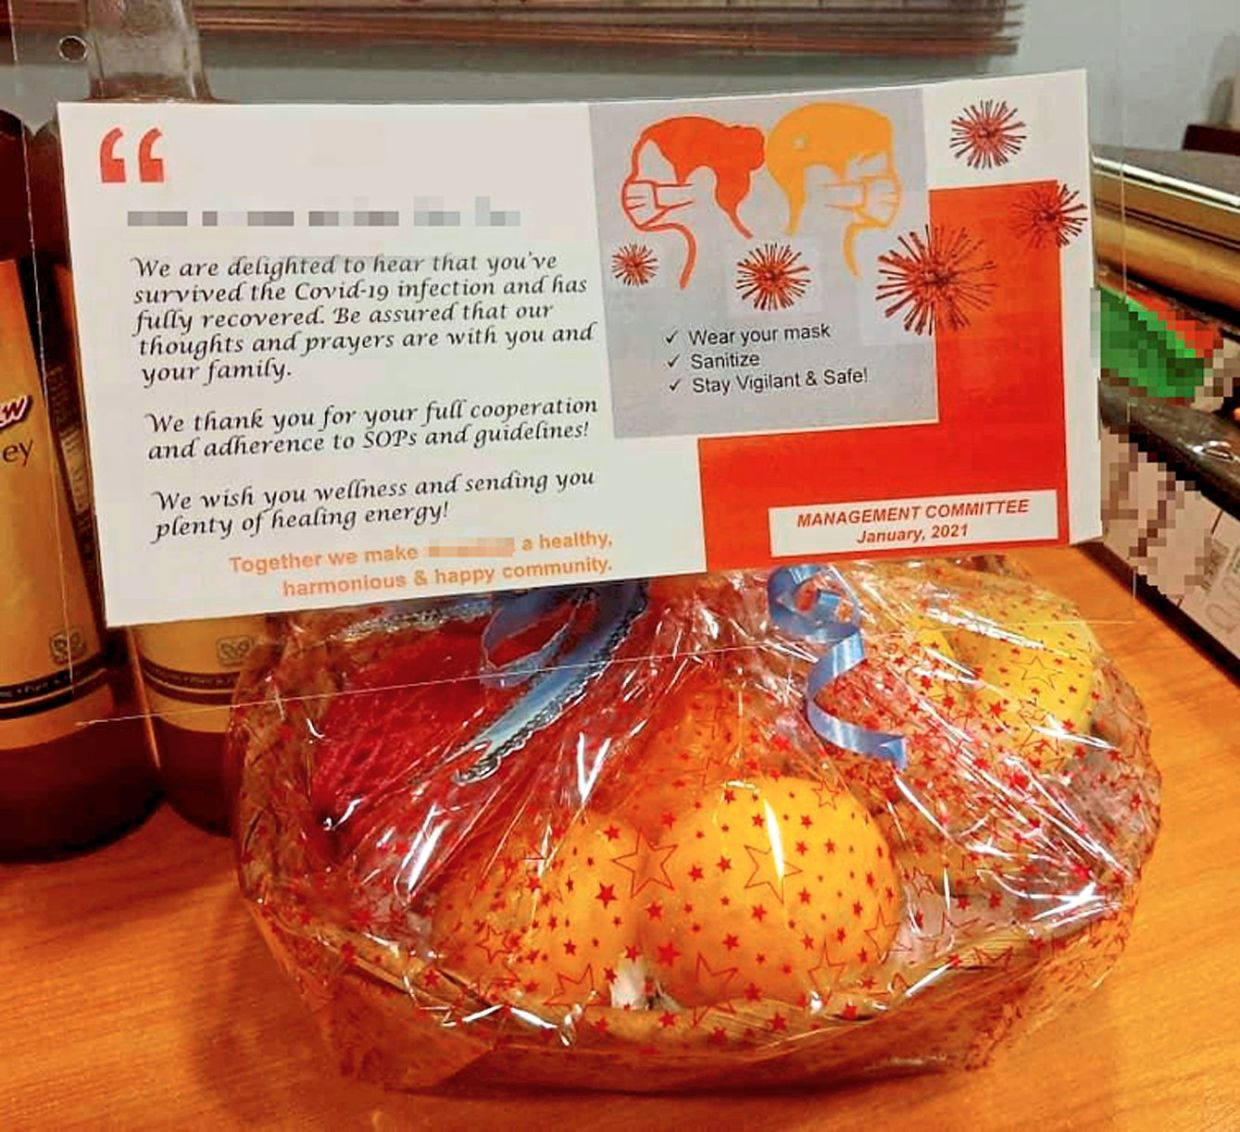 A thoughtful  gesture by a  condominium management  — sending a  fruit basket to residents who have recovered.